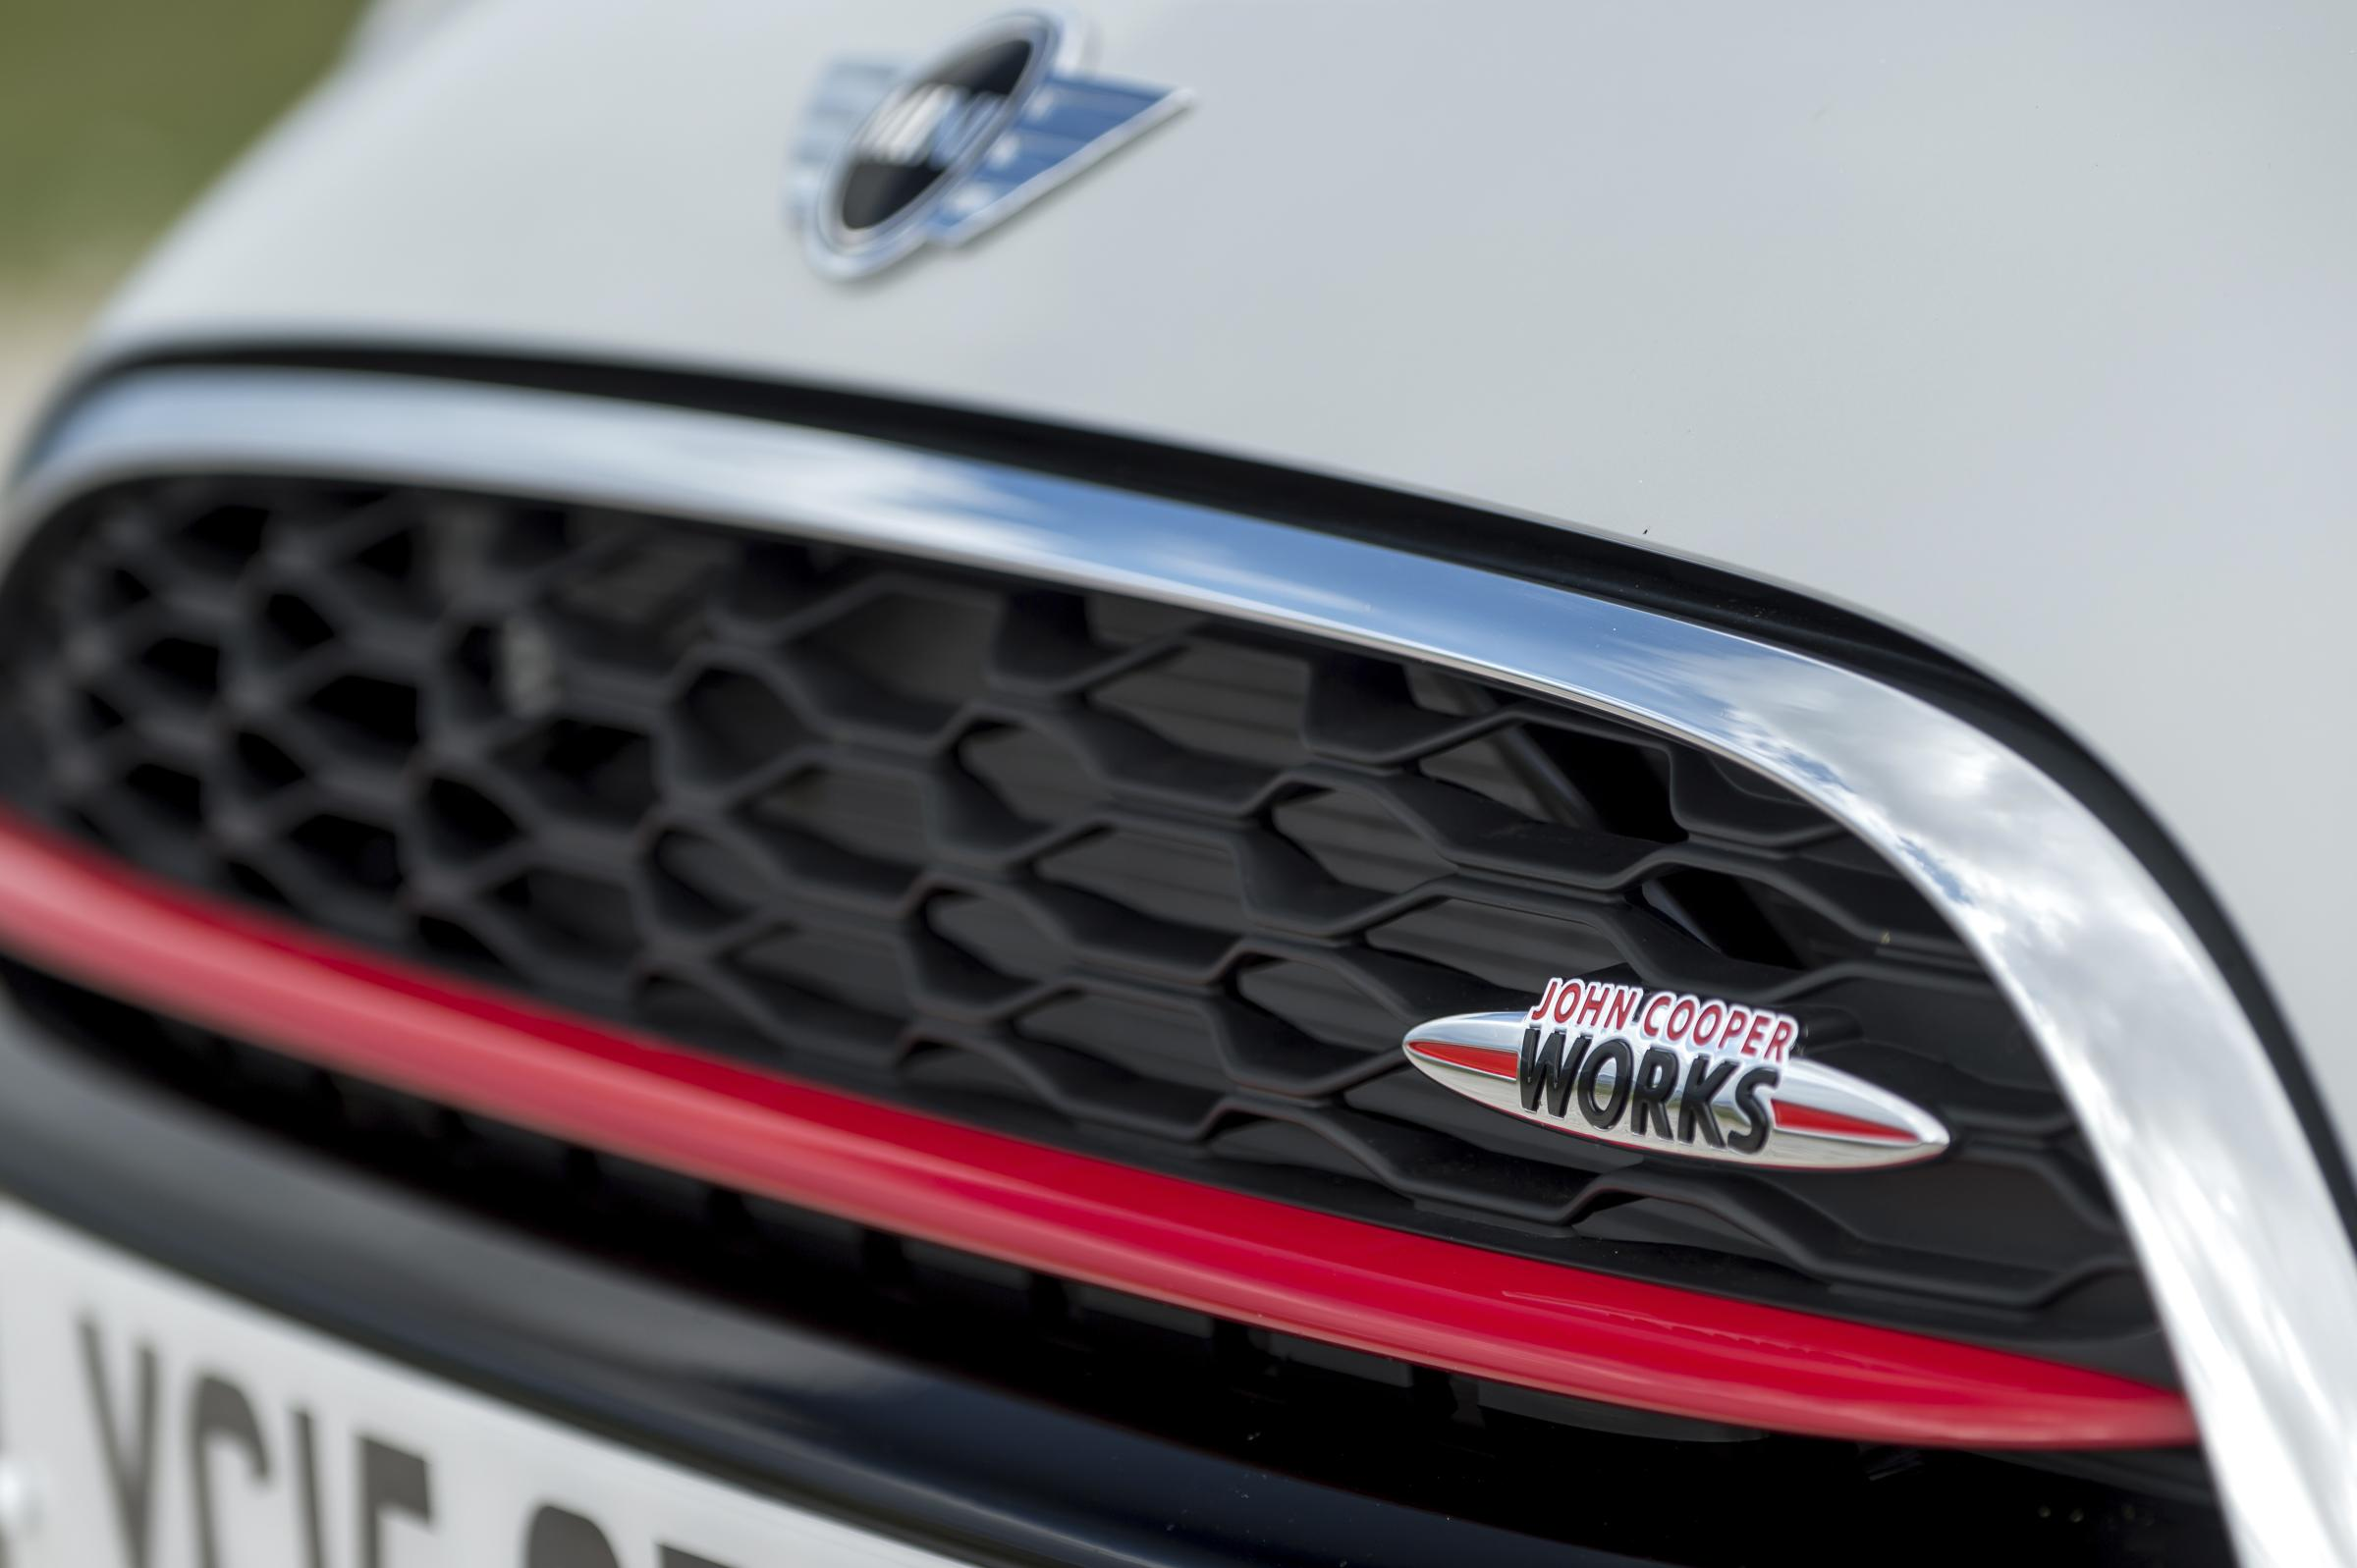 2 0 Litre 231bhp Mini John Cooper Works And Just 133g Km